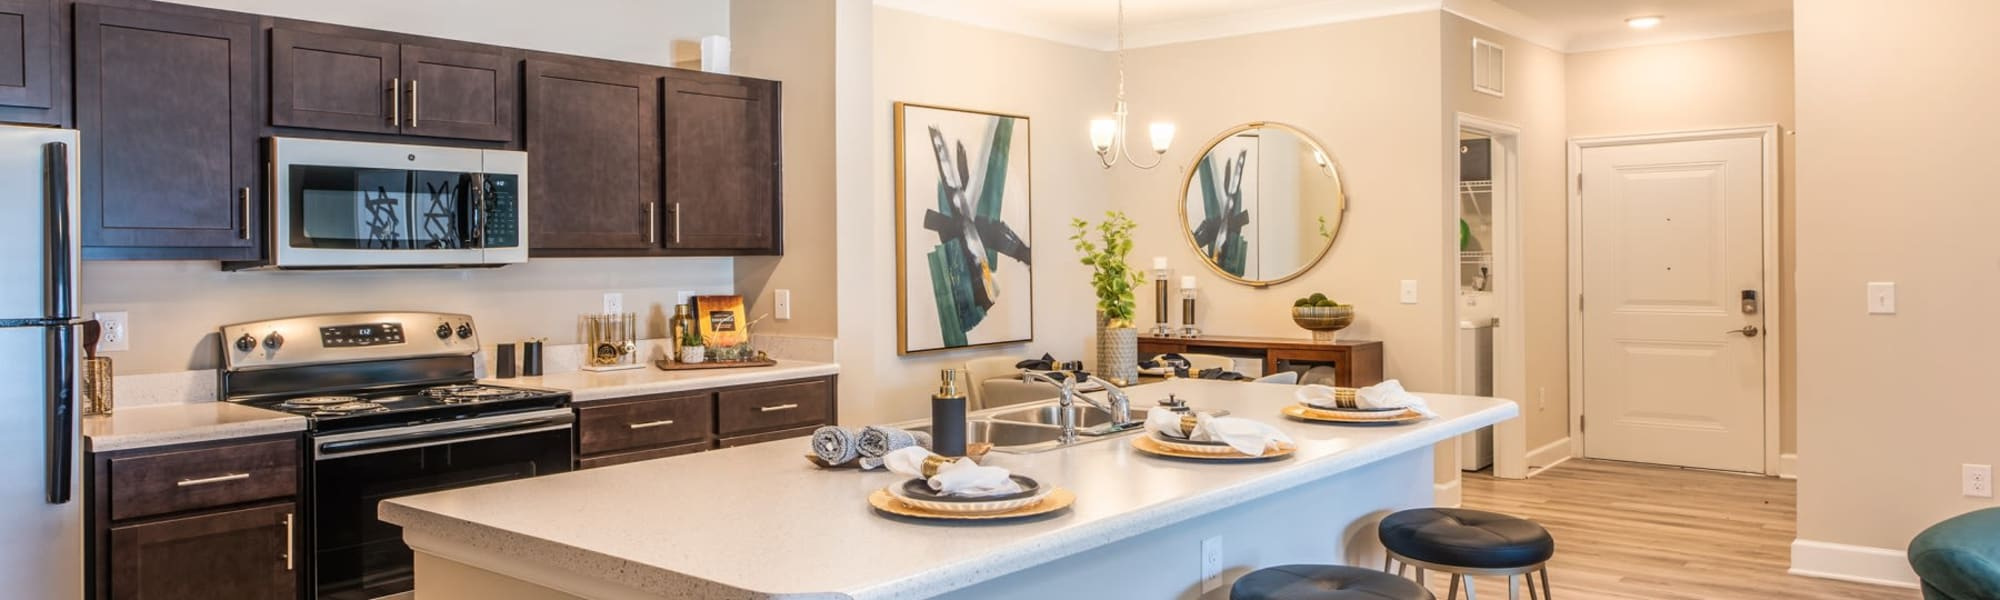 Photos of Domain at Founders Parc in Euless, Texas